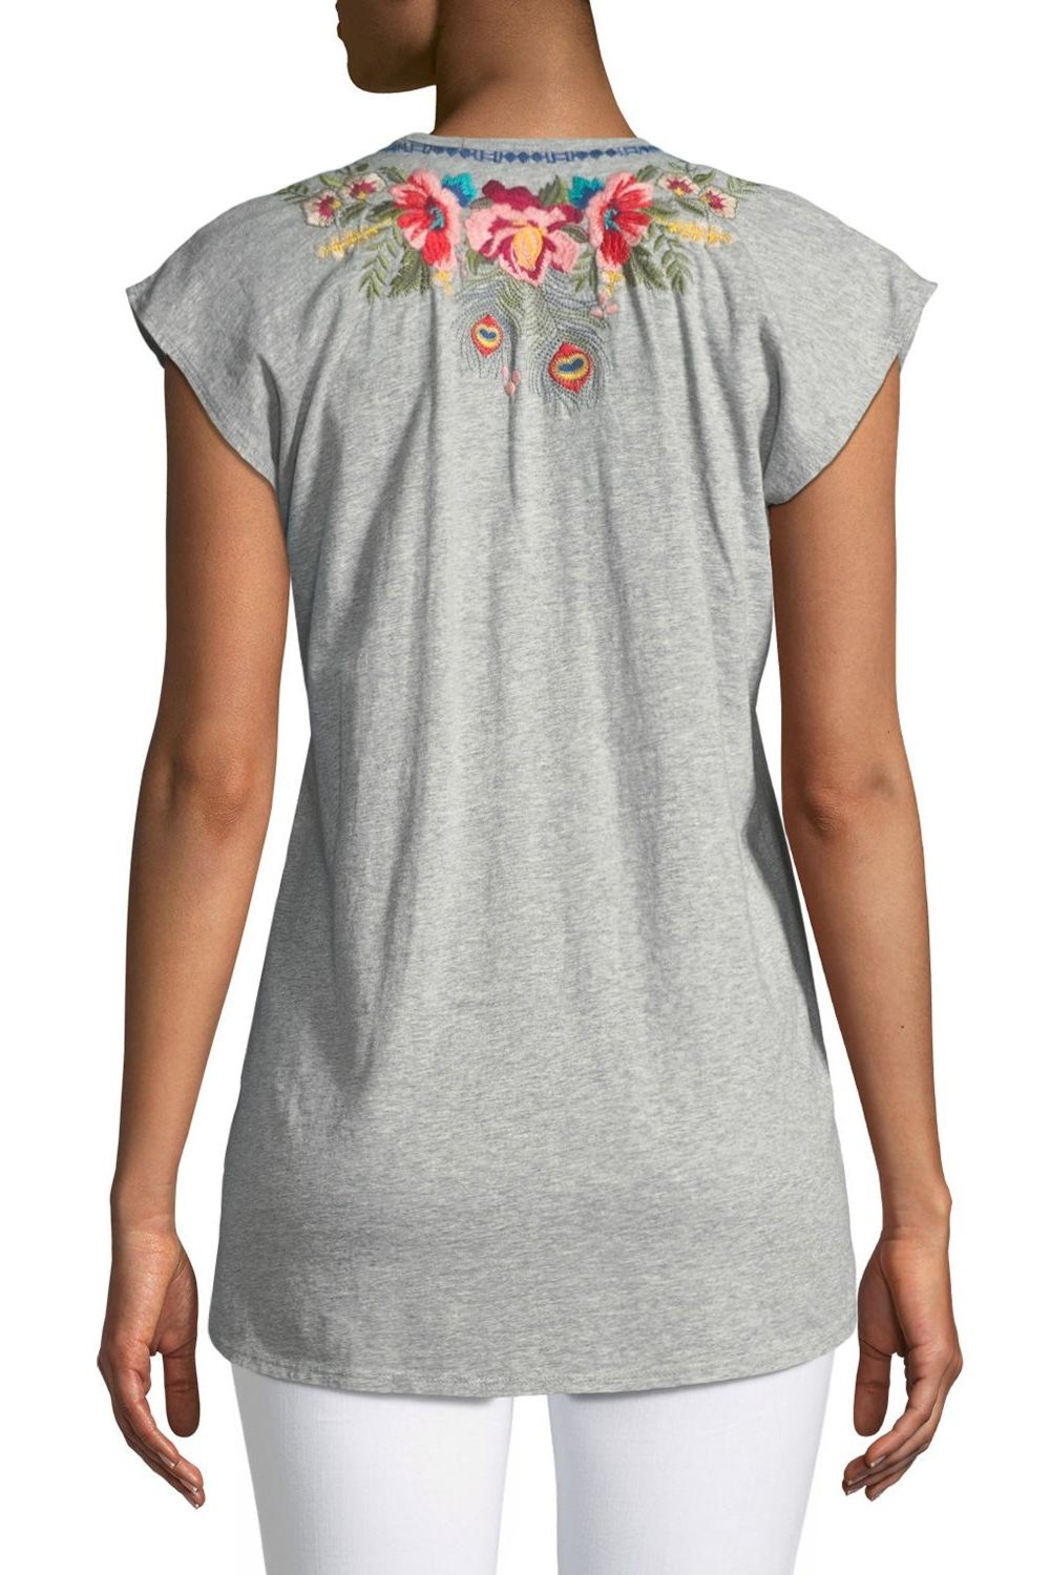 Johnny Was Vernazza Embroidered Tee - Front Full Image